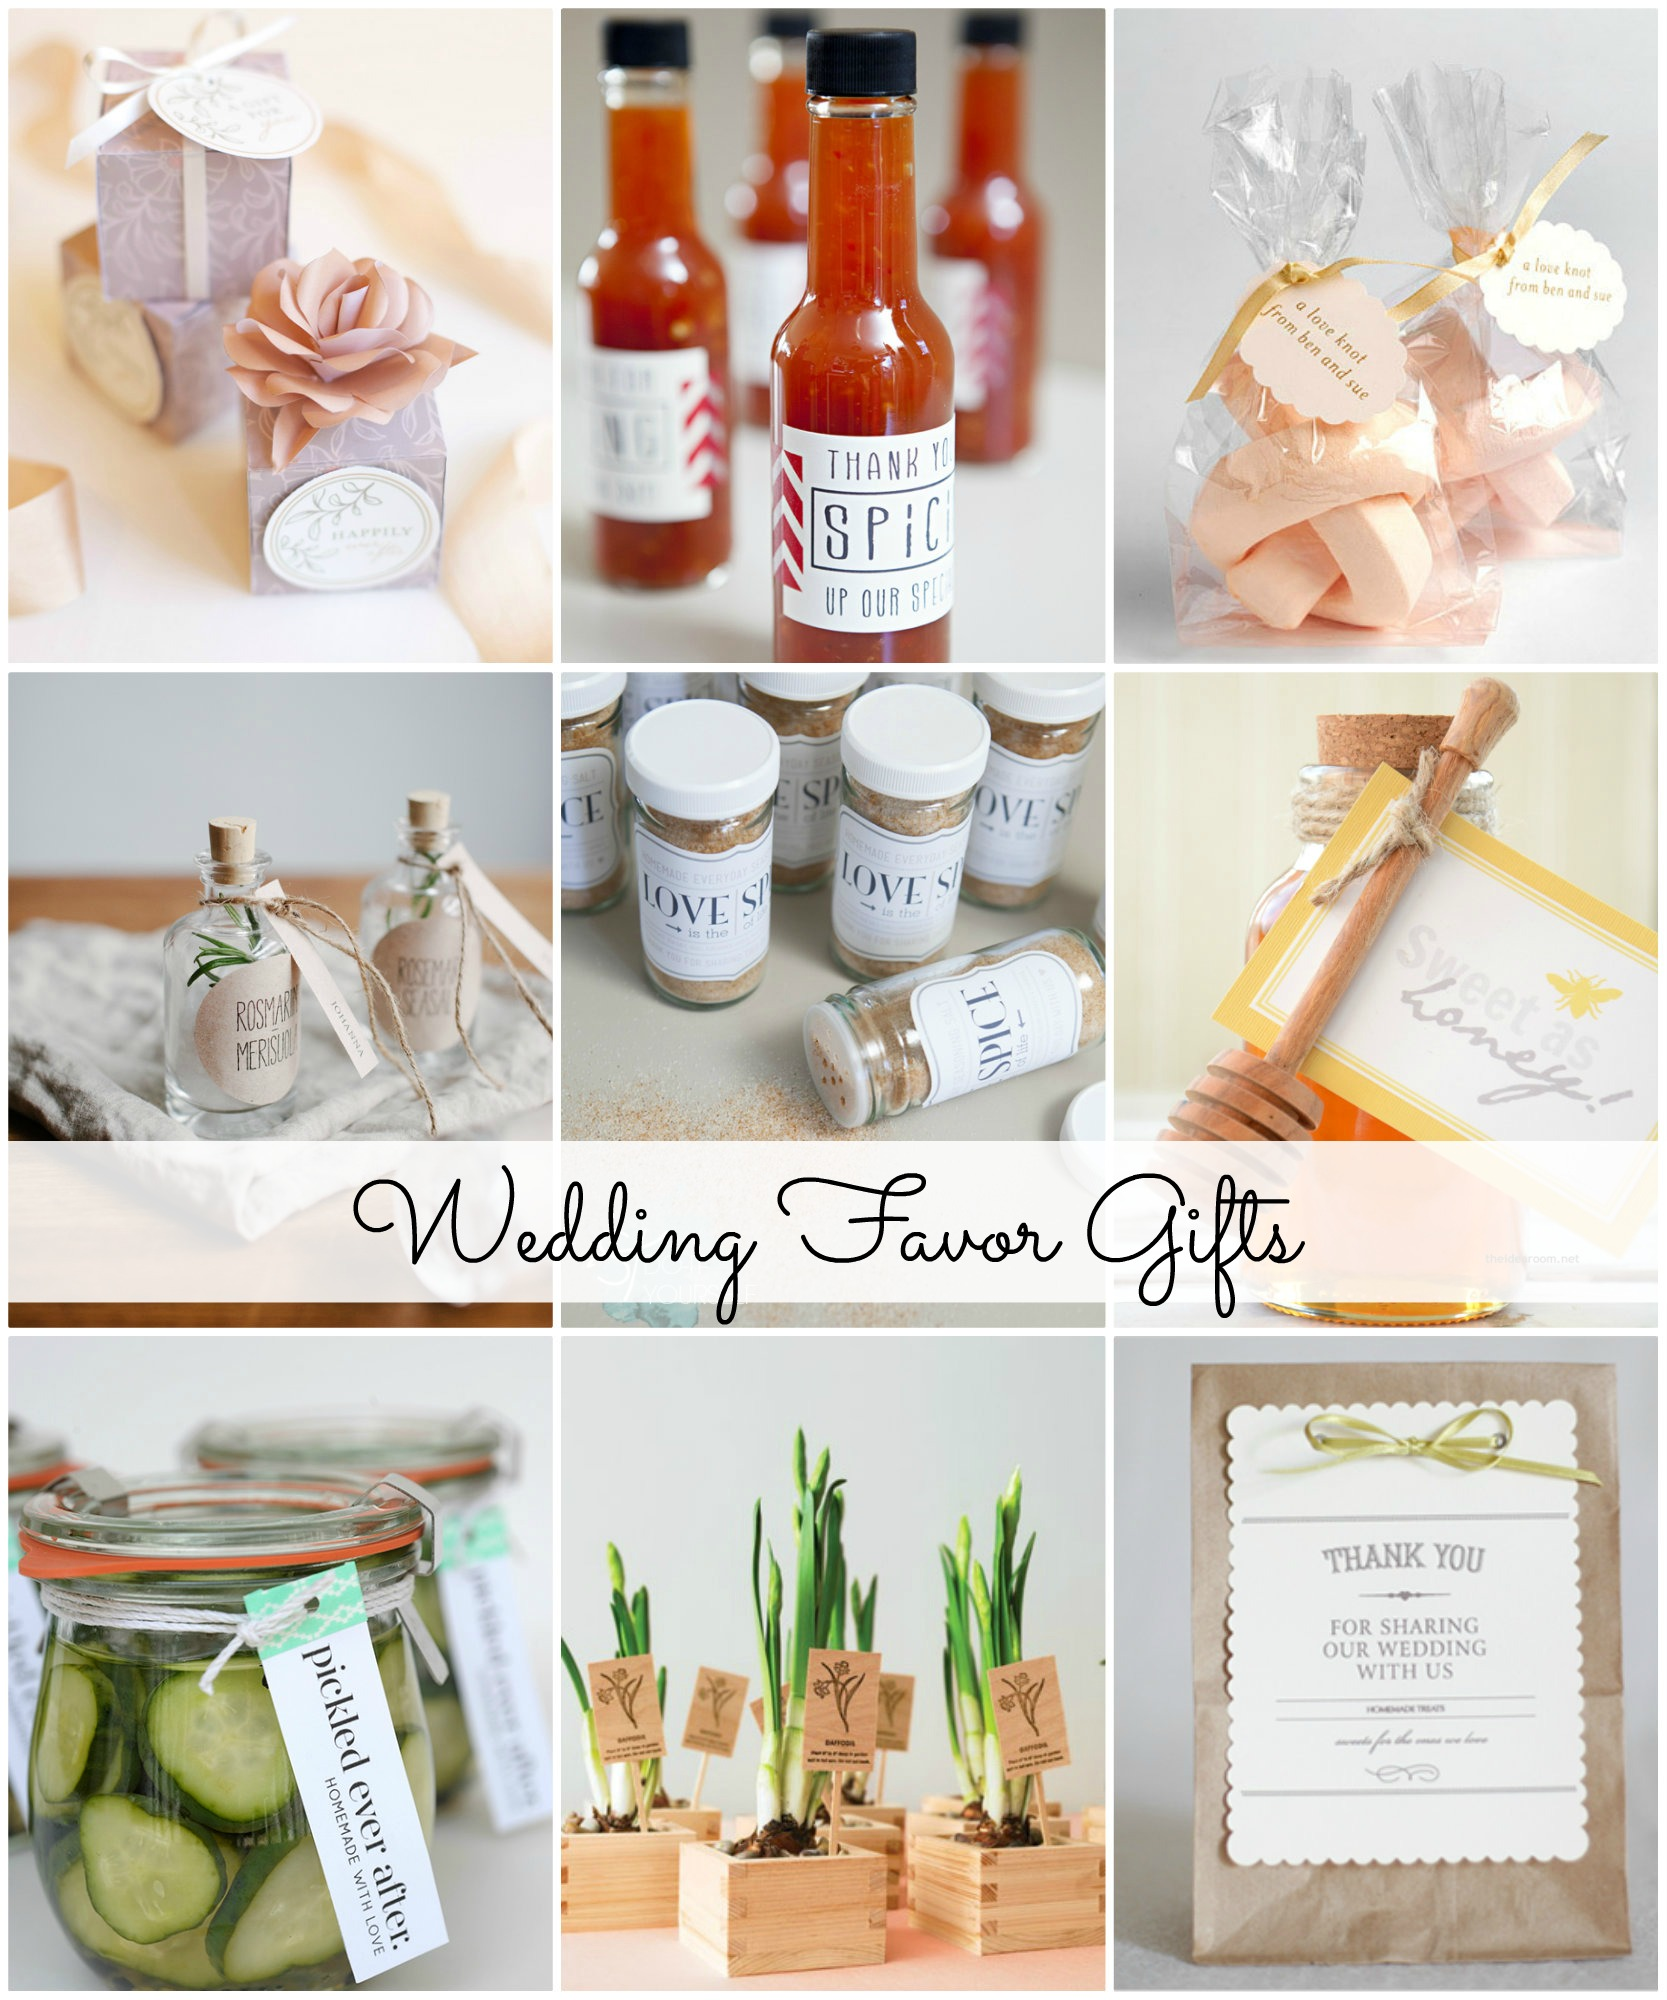 50 unique wedding ideas that make your wedding day fun and just that little bit different! December 9th You will remember your wedding day for the rest of your life, but it's often the smallest and unexpected details that will make your day most memorable.